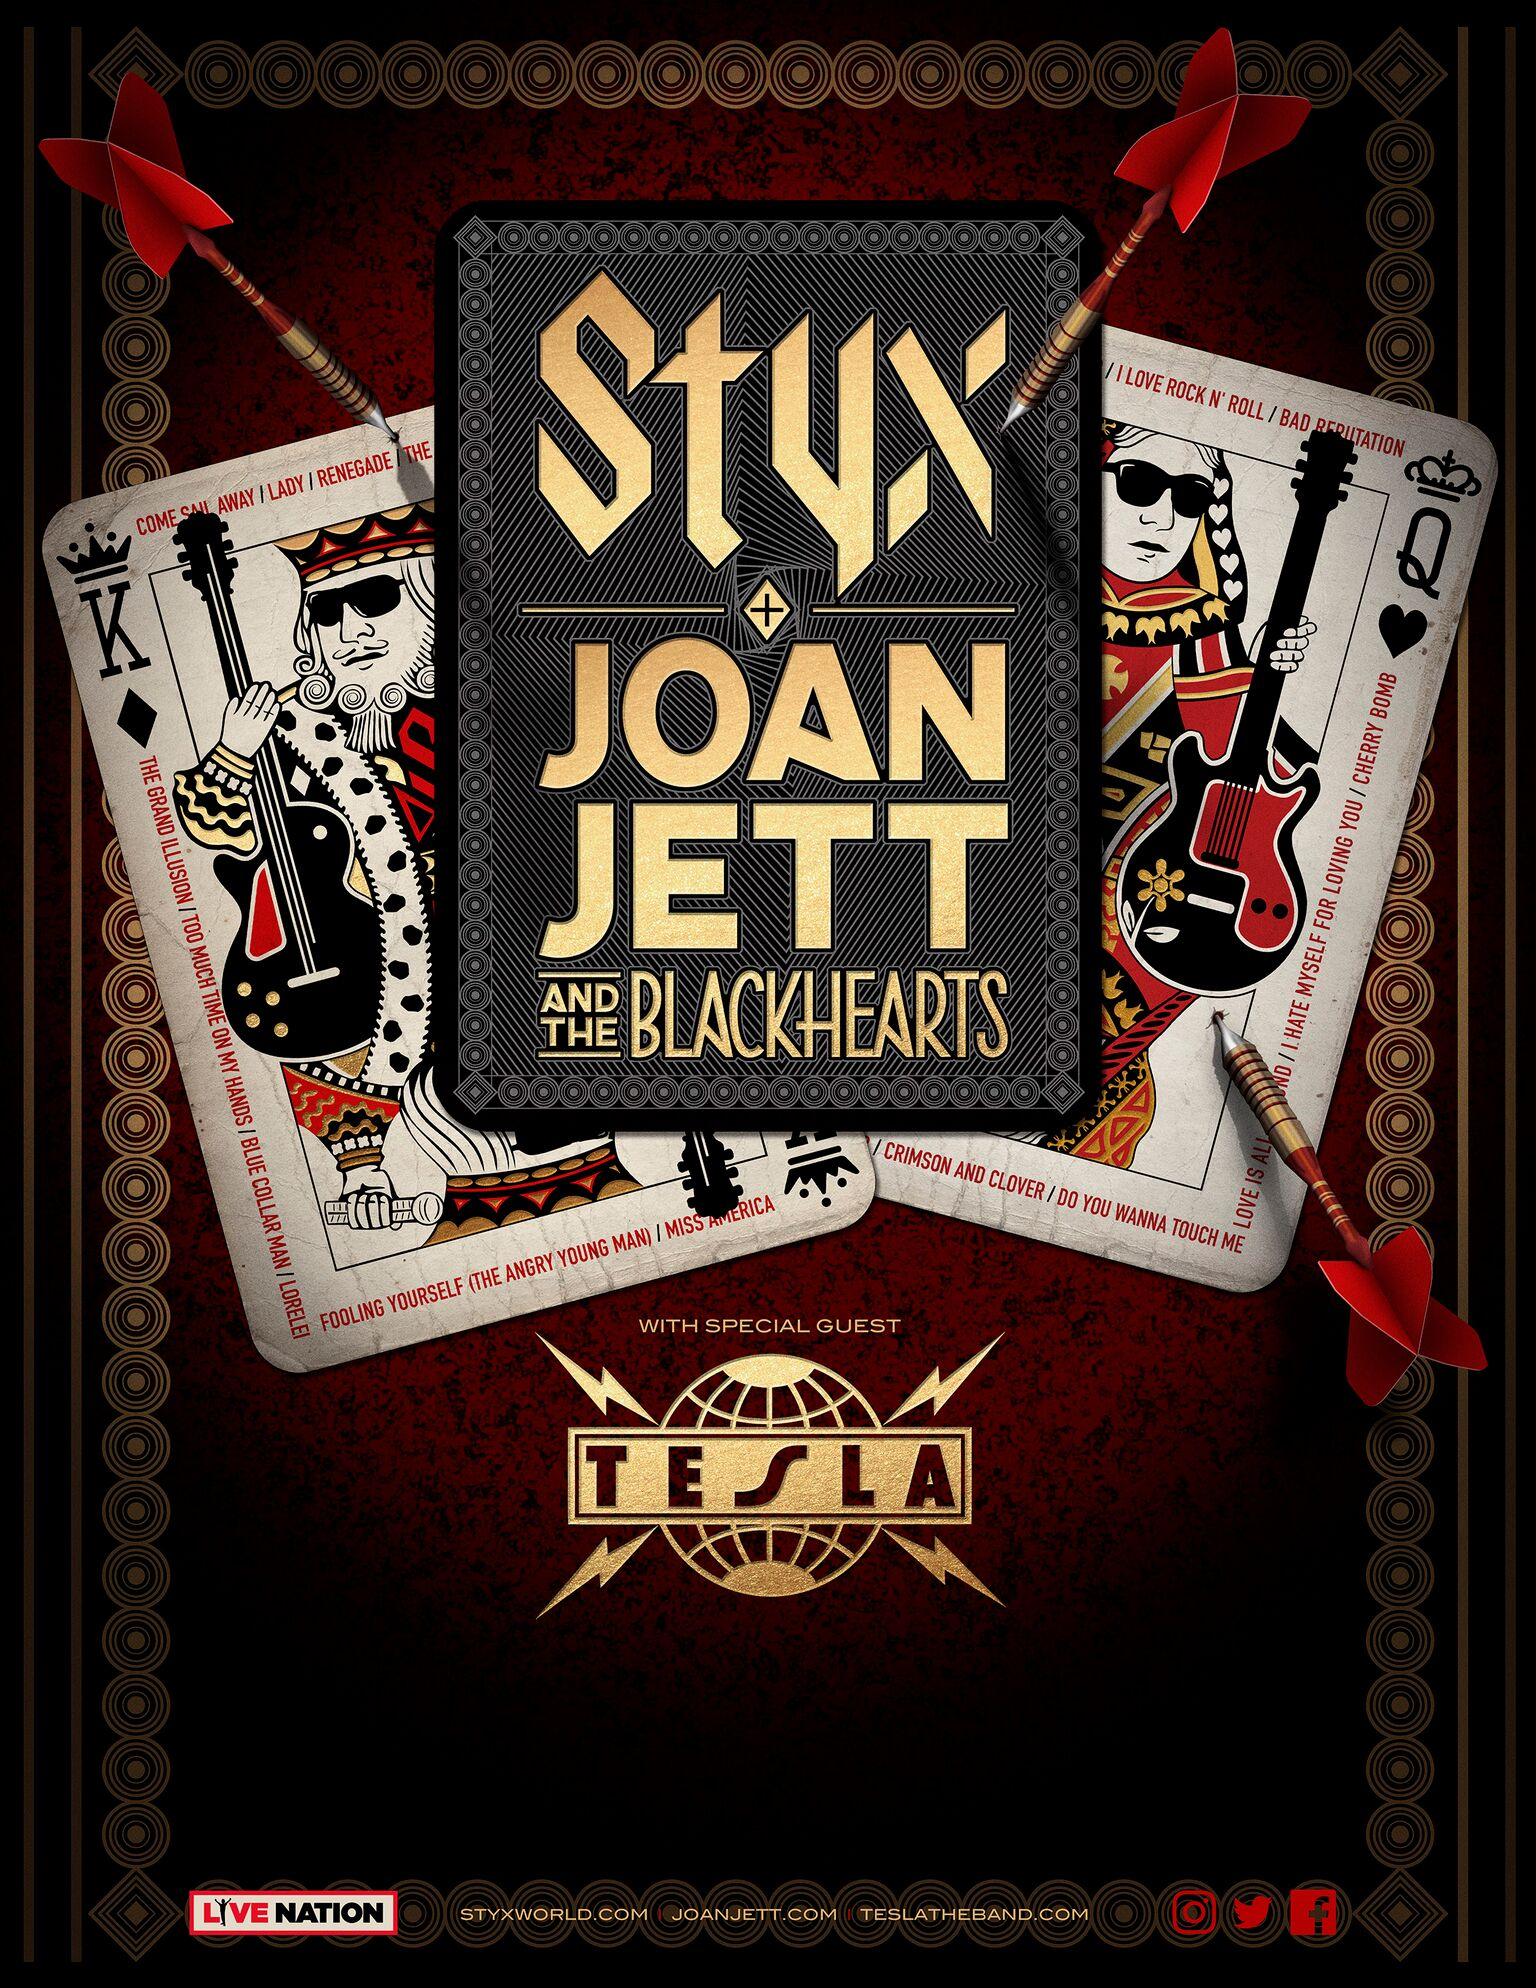 A Triple Bill Featuring Three Very Diffe Clic Rock Headliners Styx Joan Jett And The Blackhearts Tesla Will Head Out On Summer U S Tour That